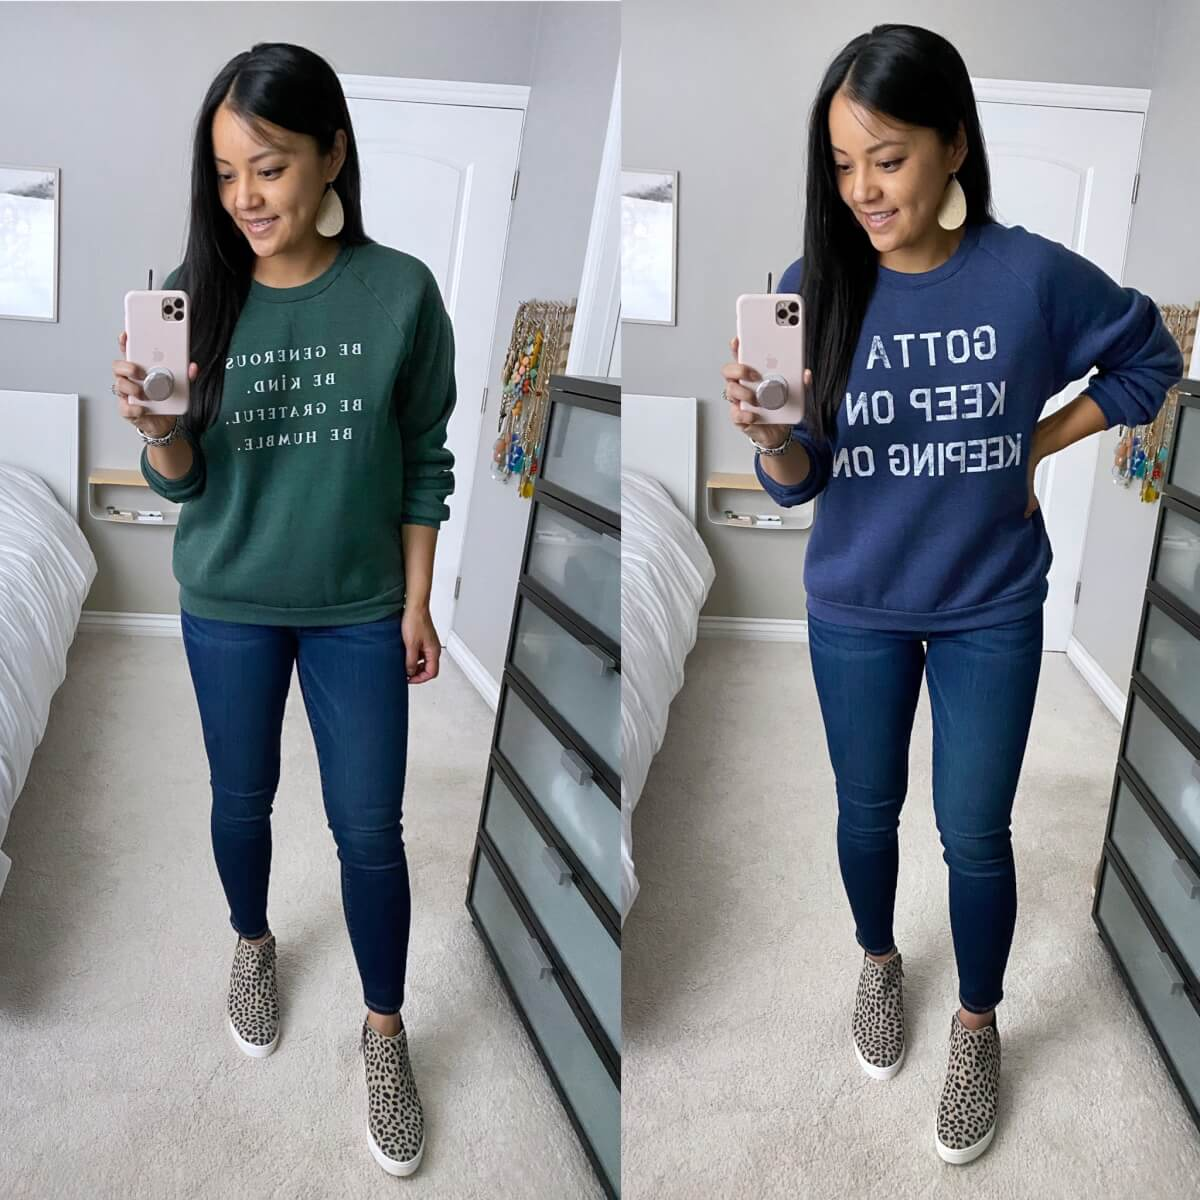 2 Casual Sweatshirt Outfits: green or navy graphic sweatshirt + skinny jeans + leopard print wedge sneakers + gold leather earrings